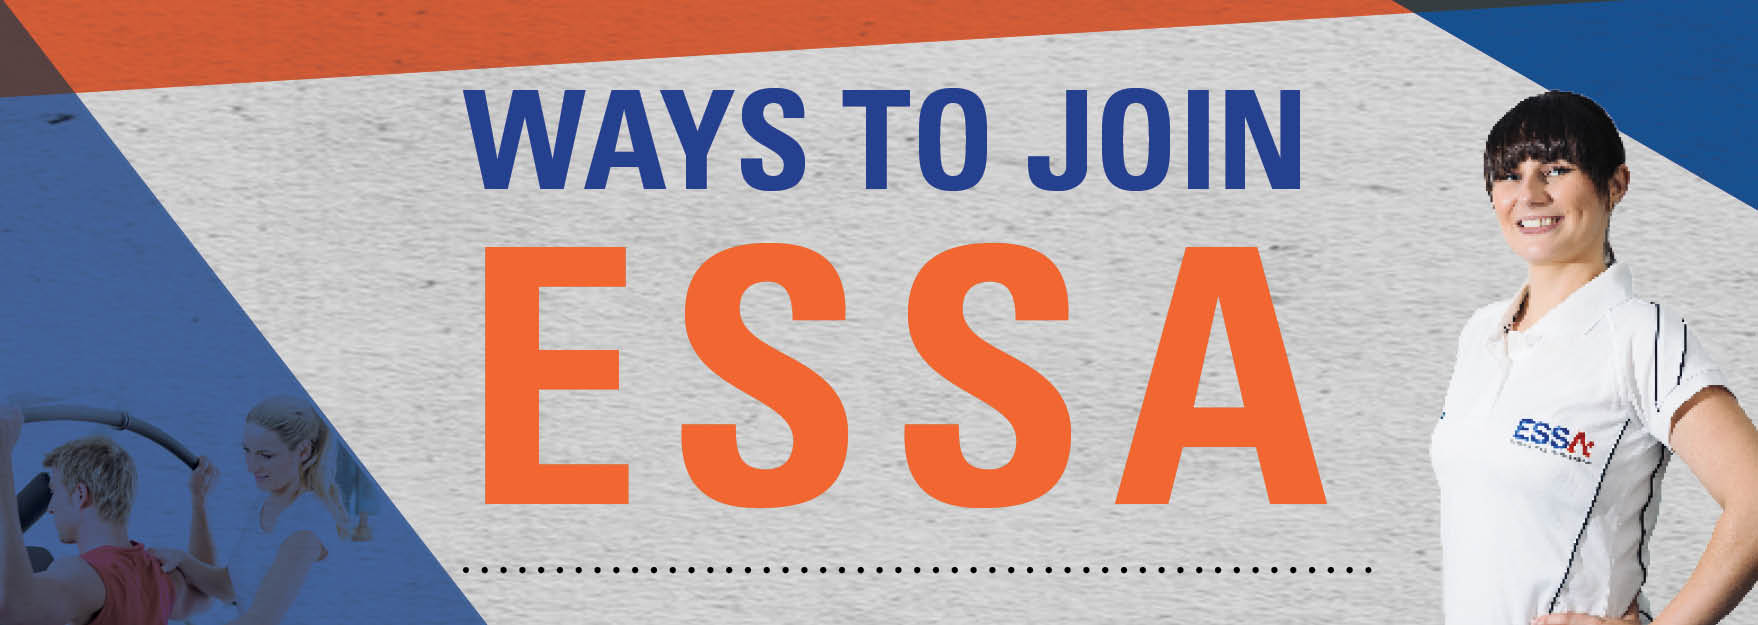 ways to join essa banner